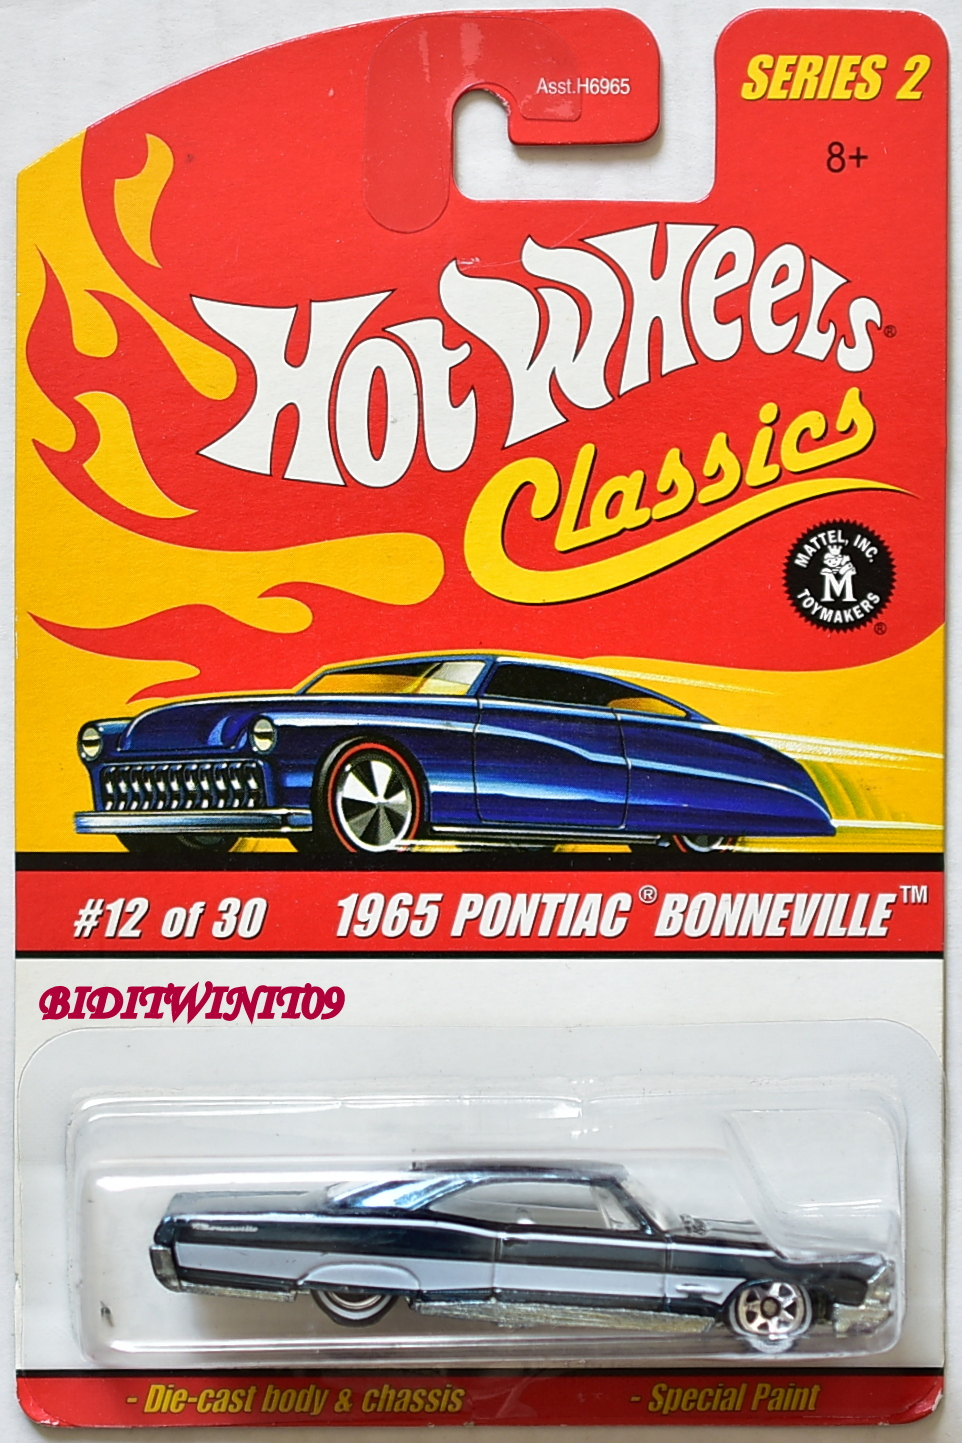 HOT WHEELS CLASSICS SERIES 2 1965 PONTIAC BONNEVILLE #12/30 E+